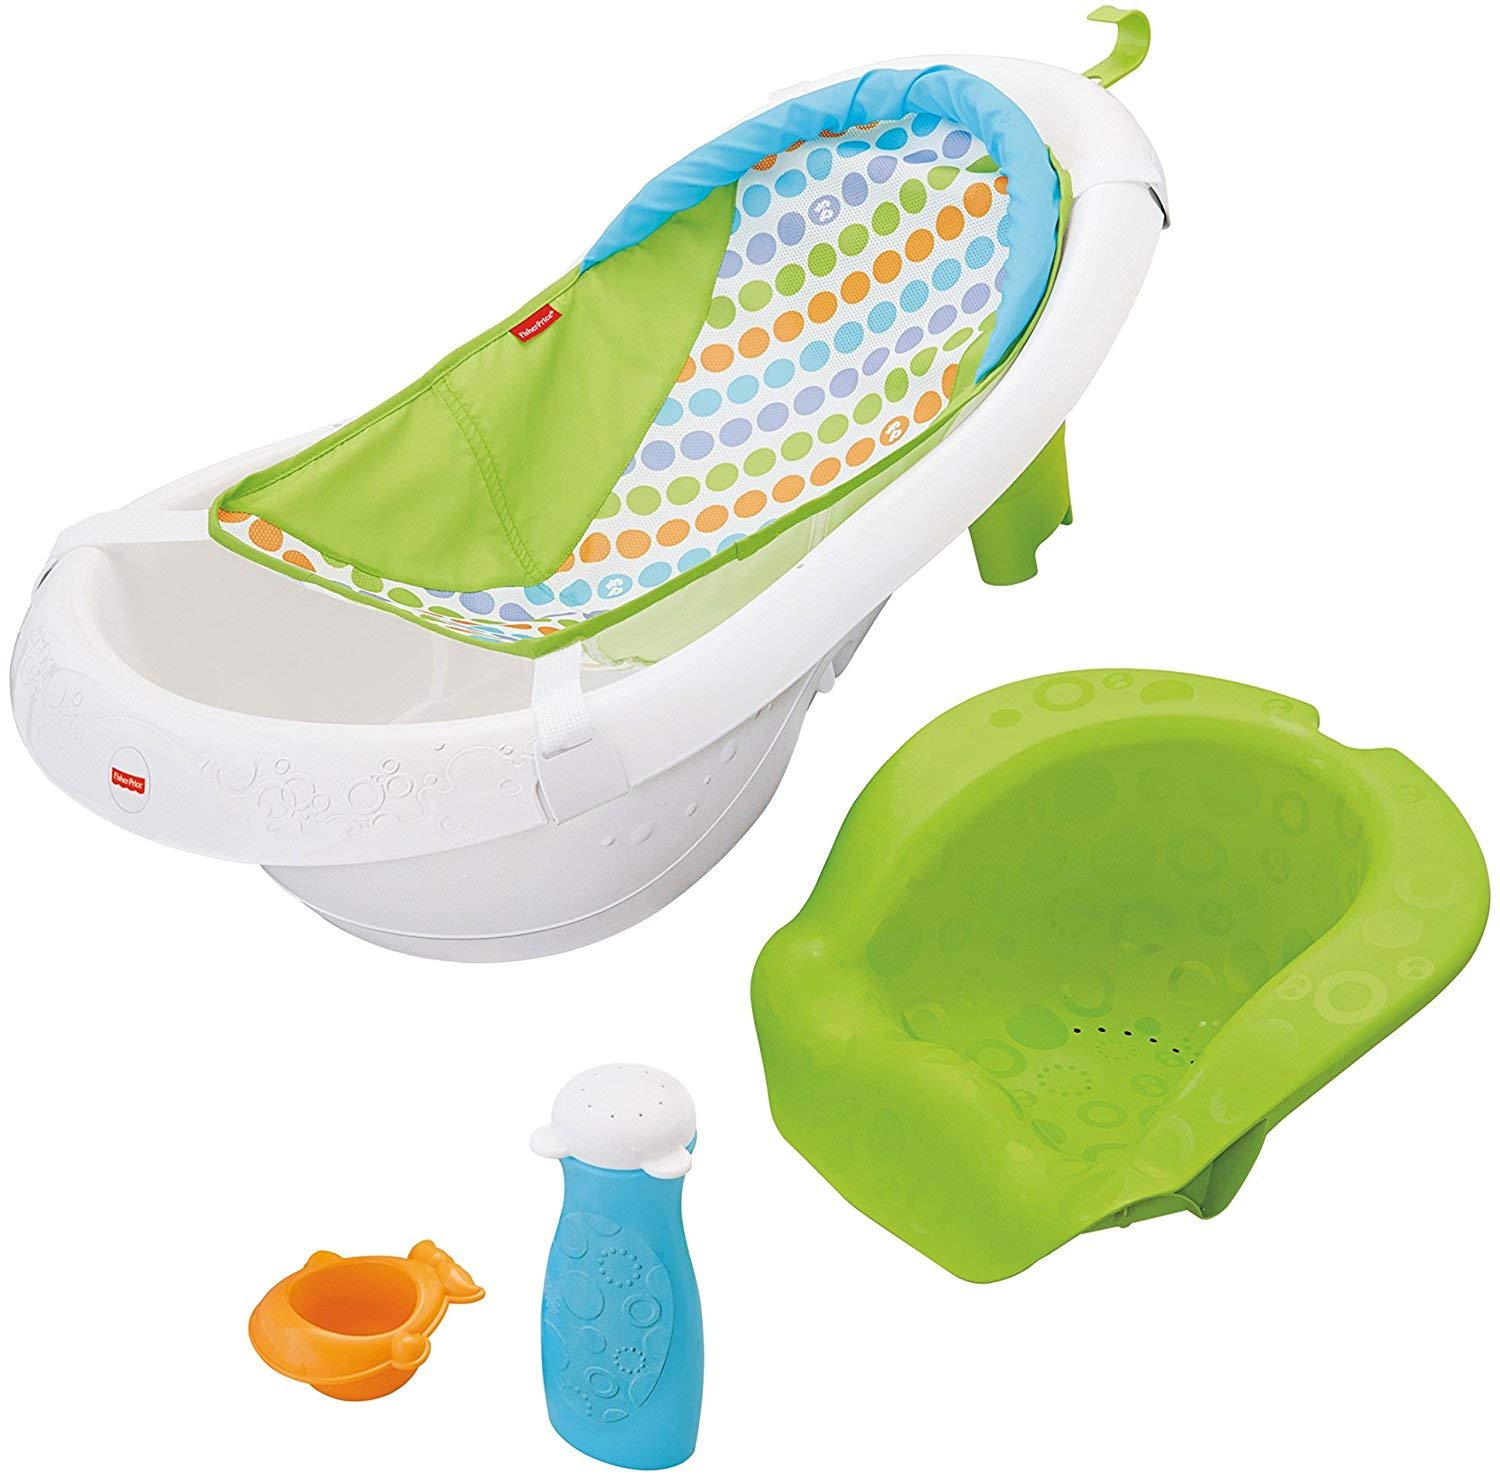 Top 7 Best Infant Tubs For Newborn Reviews in 2021 10